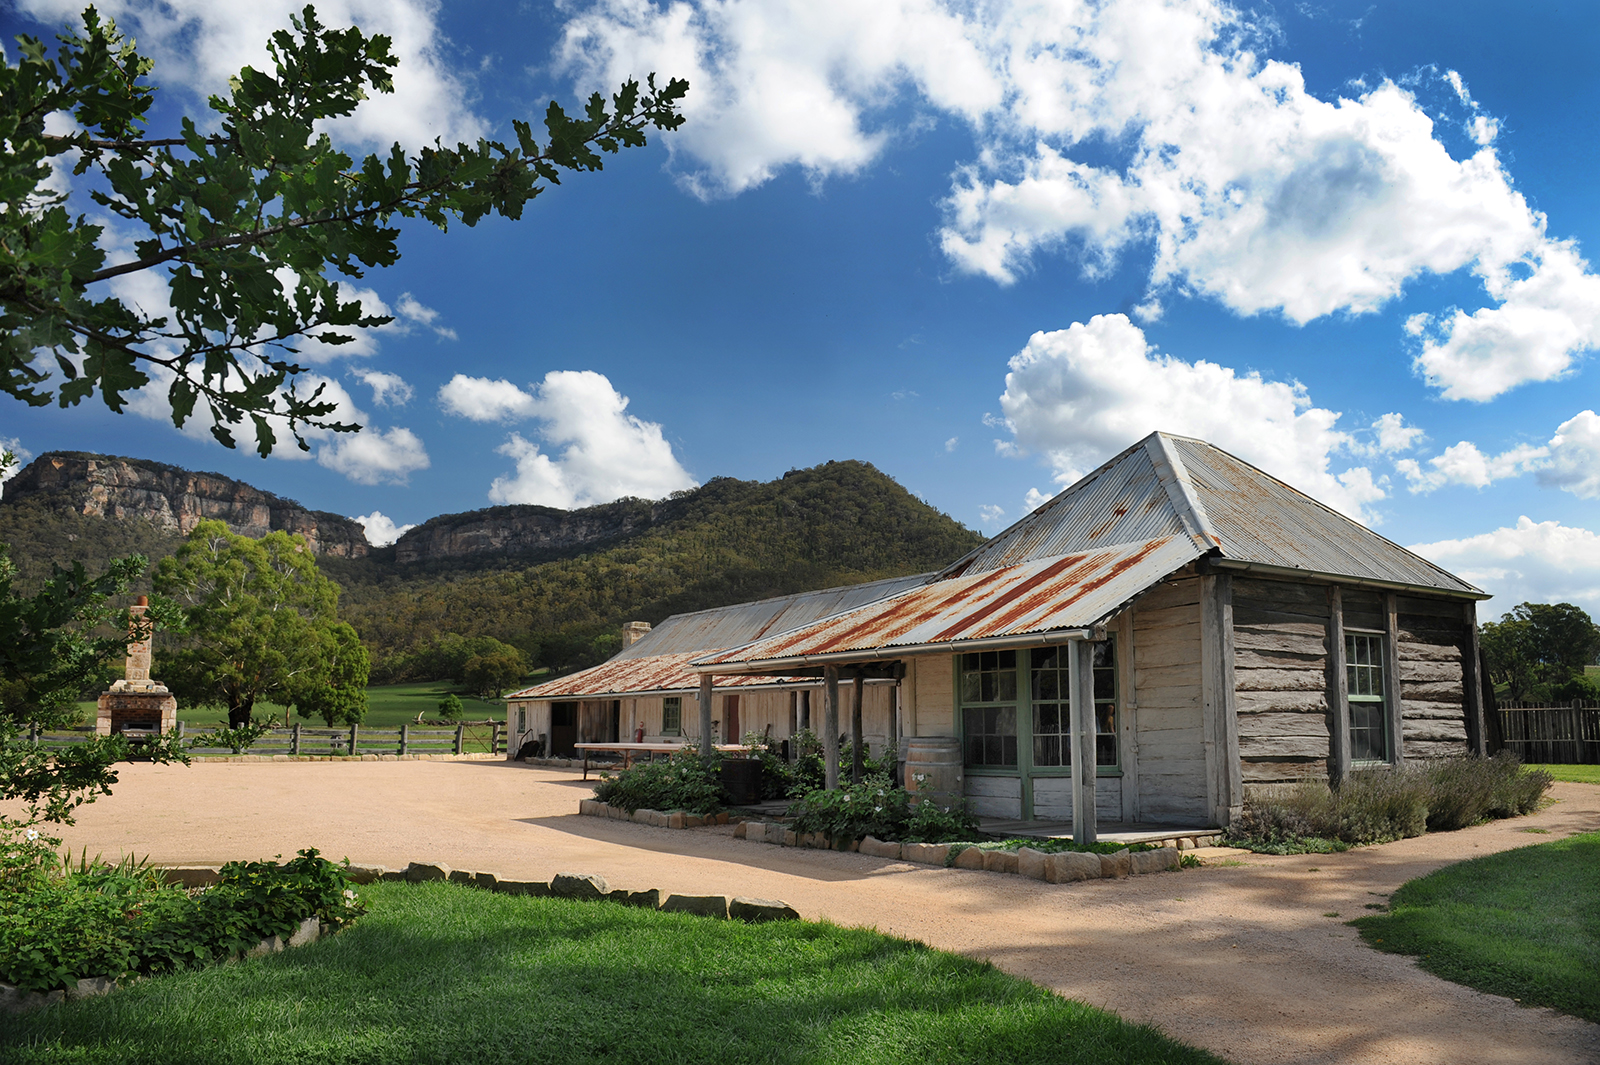 Emirates One & Only Wolgan Valley, Lithgow